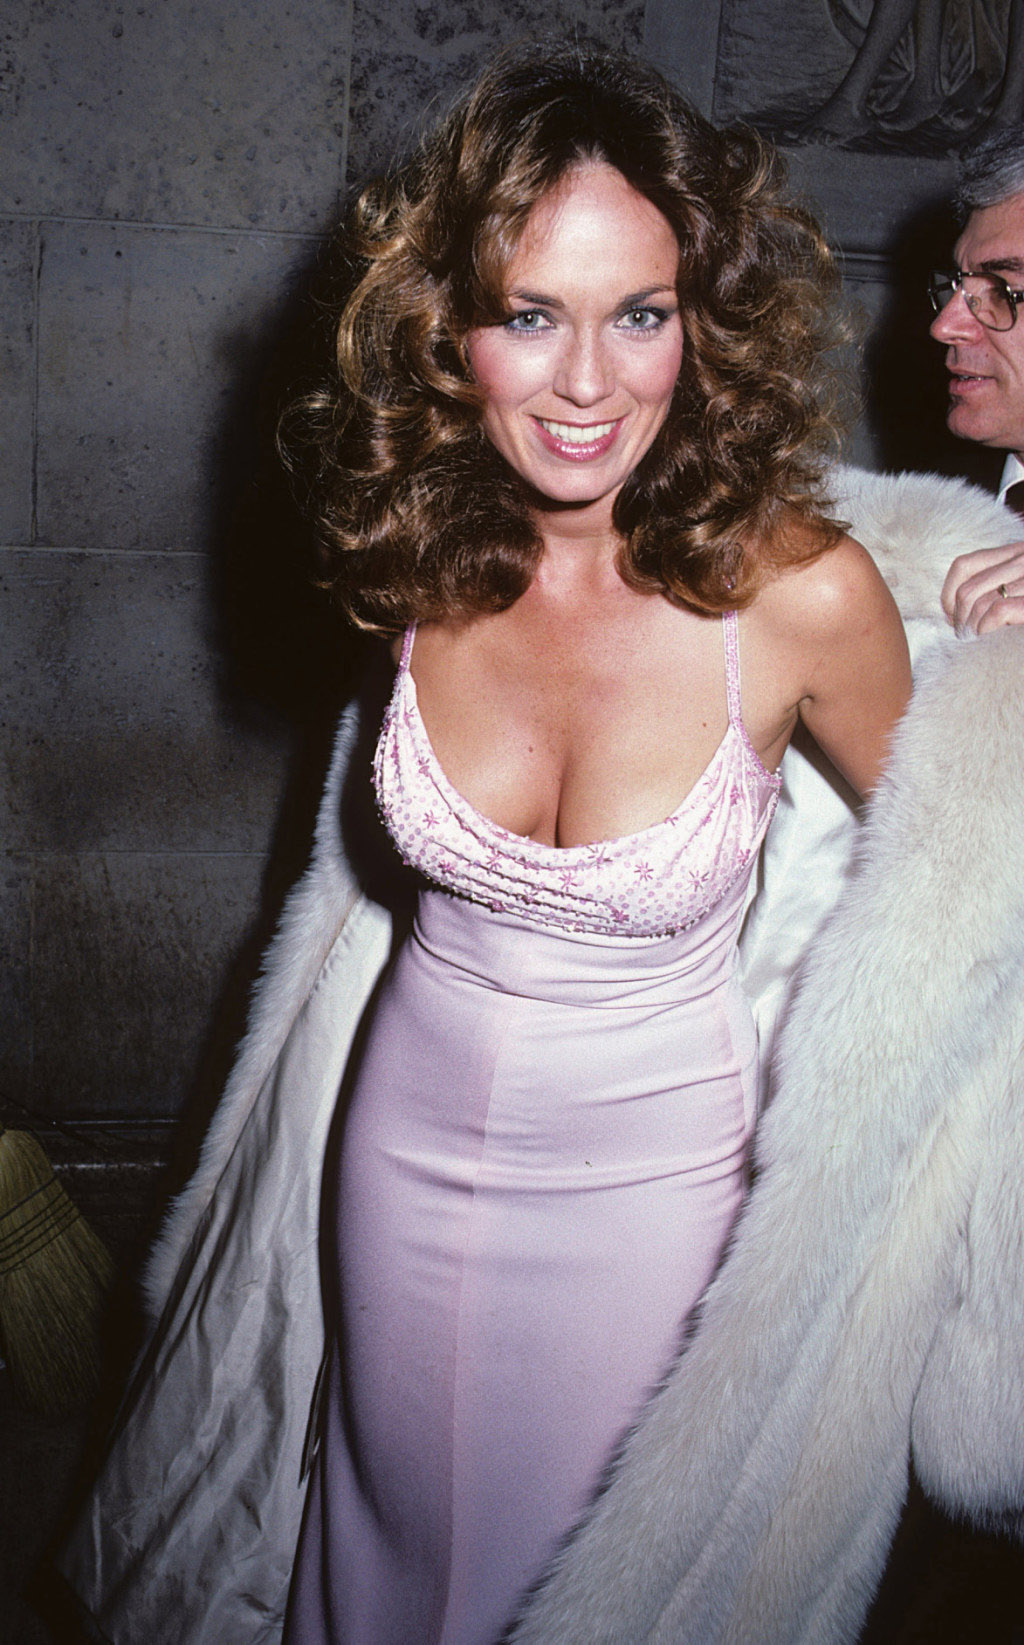 Catherine bach nude images 71